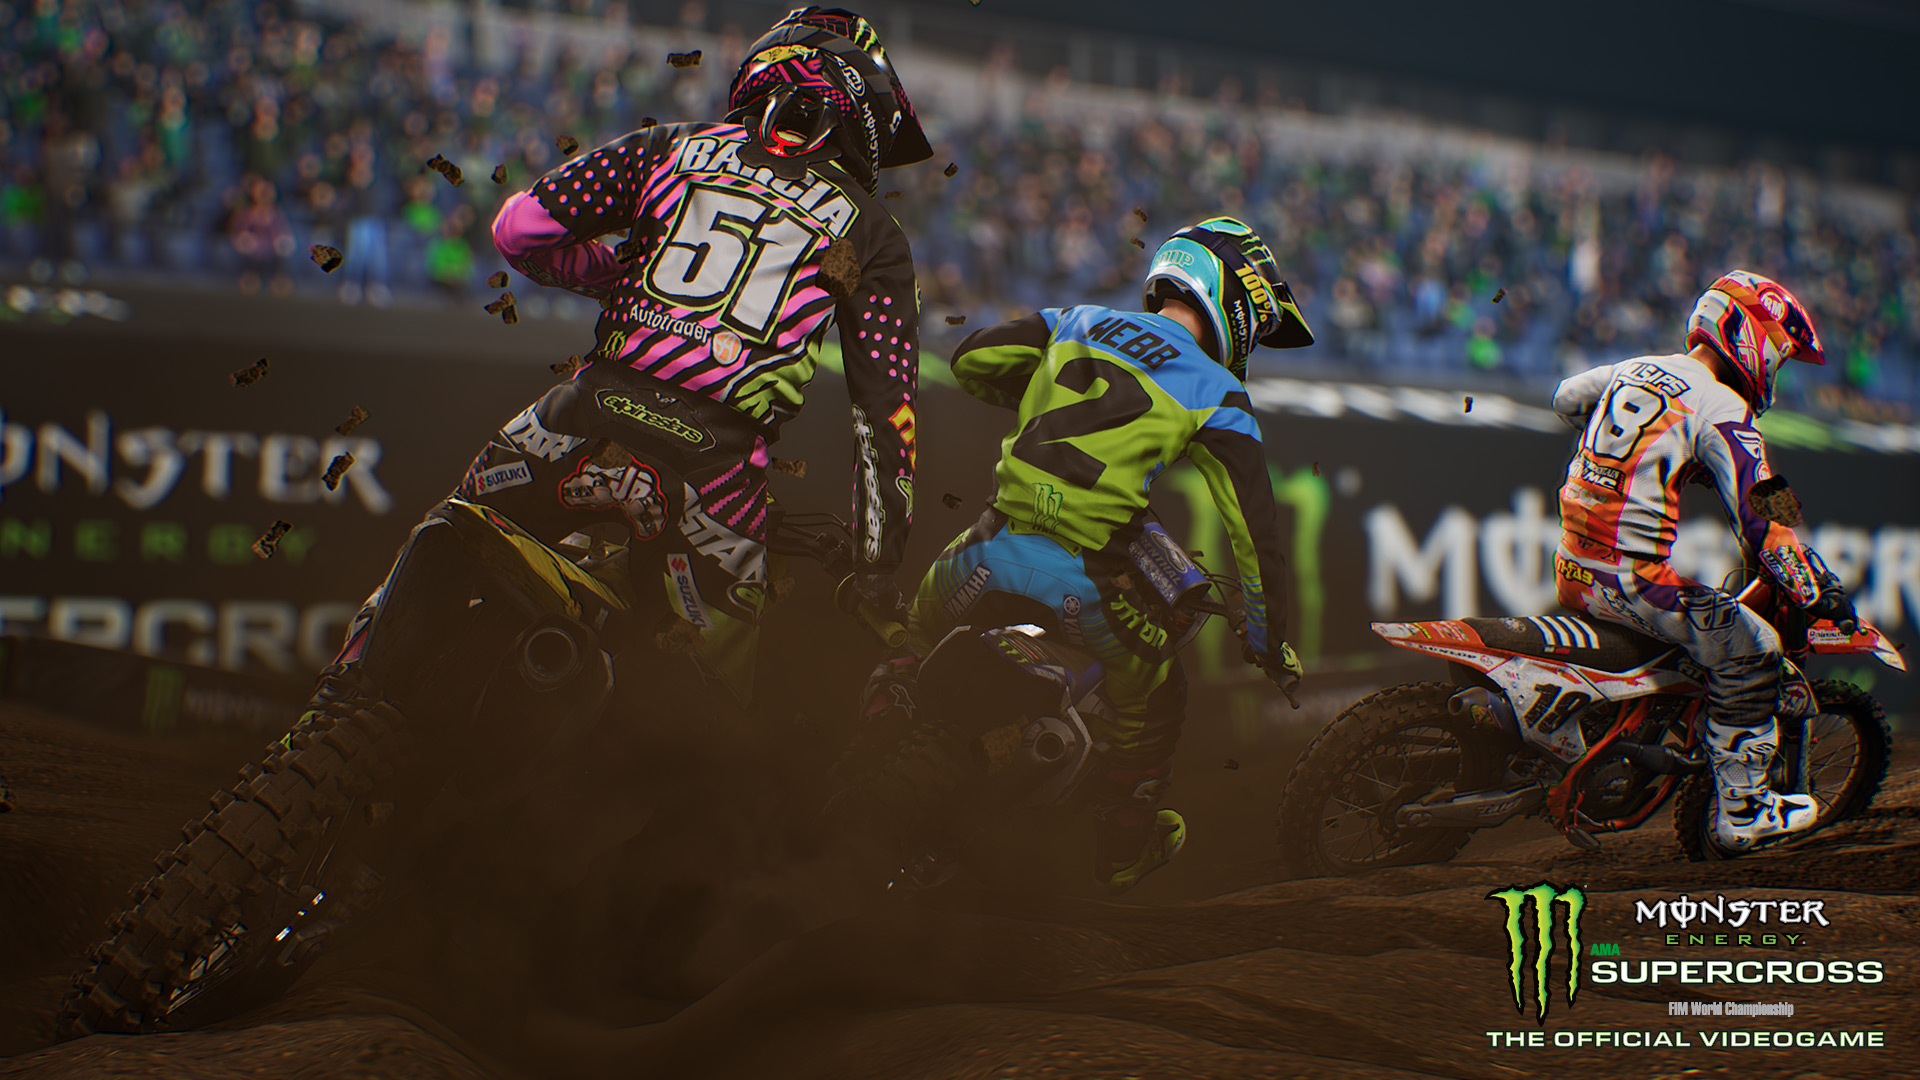 Monster Energy Supercross' track editor is exactly what I am looking for screenshot